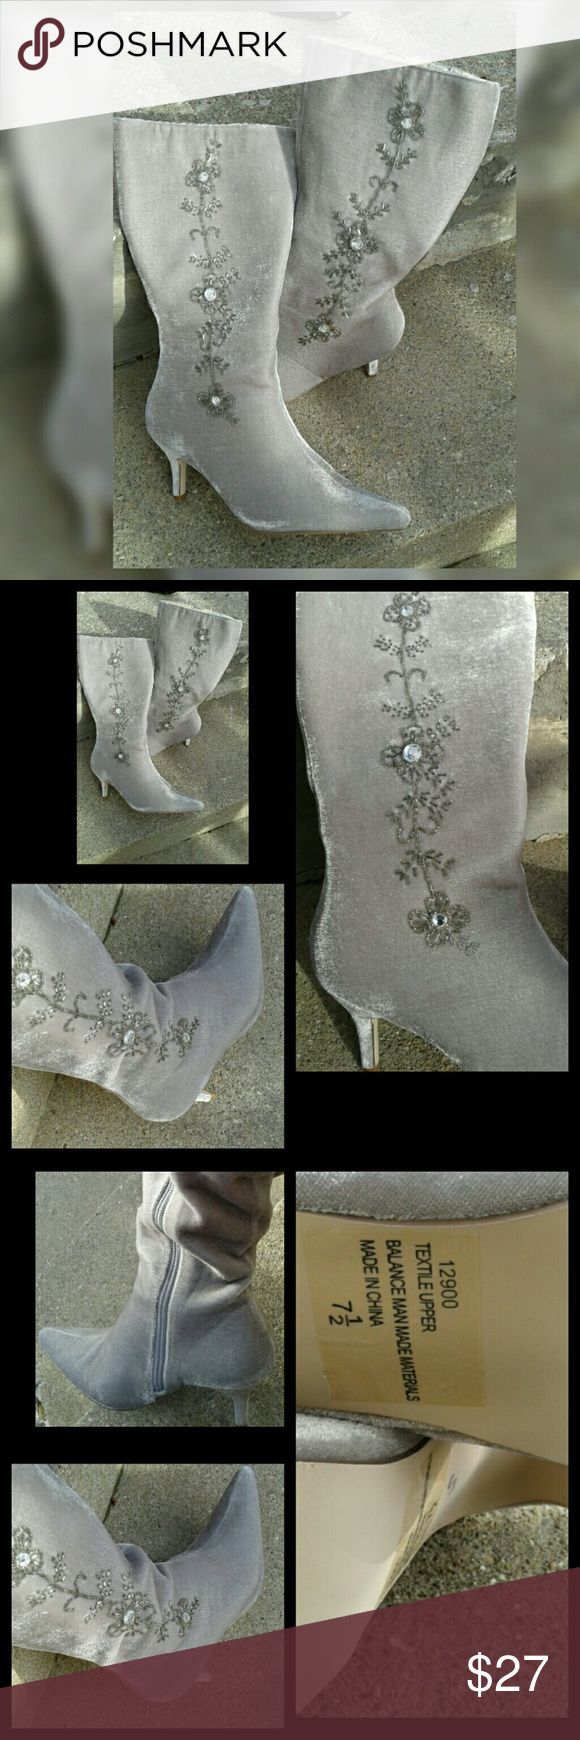 """Velvet Embroidered Pointy Toe Boot New no box! Simply Gorgeous boots! Gray Velvet with embroidery and rhinestones! 3"""" heel, pointy toe. SIZE 7.5. overall height of boot is 14.5 inches. Elastic at top for a little extra stretch. Top measures 7 inches elastic may allow for an extra inch. Ankle measures exactly 4.5 inches. Full side zip. These are in new unworn vintage condition. No stains but the do smell like perfume, from previous owners storage.  Questions & Offers welcomed here! Newport…"""